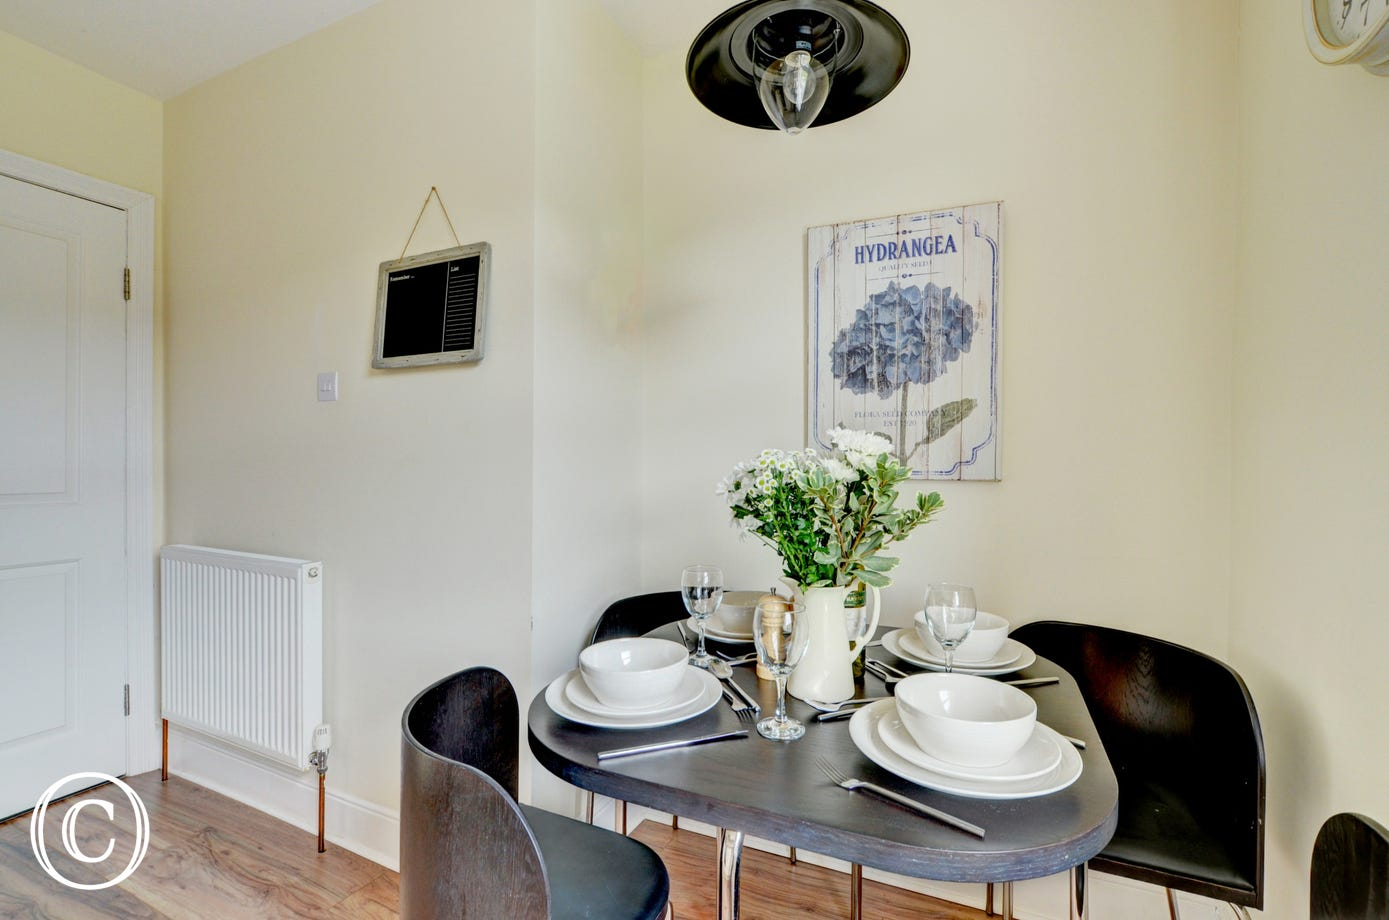 The compact dining table in the kitchen